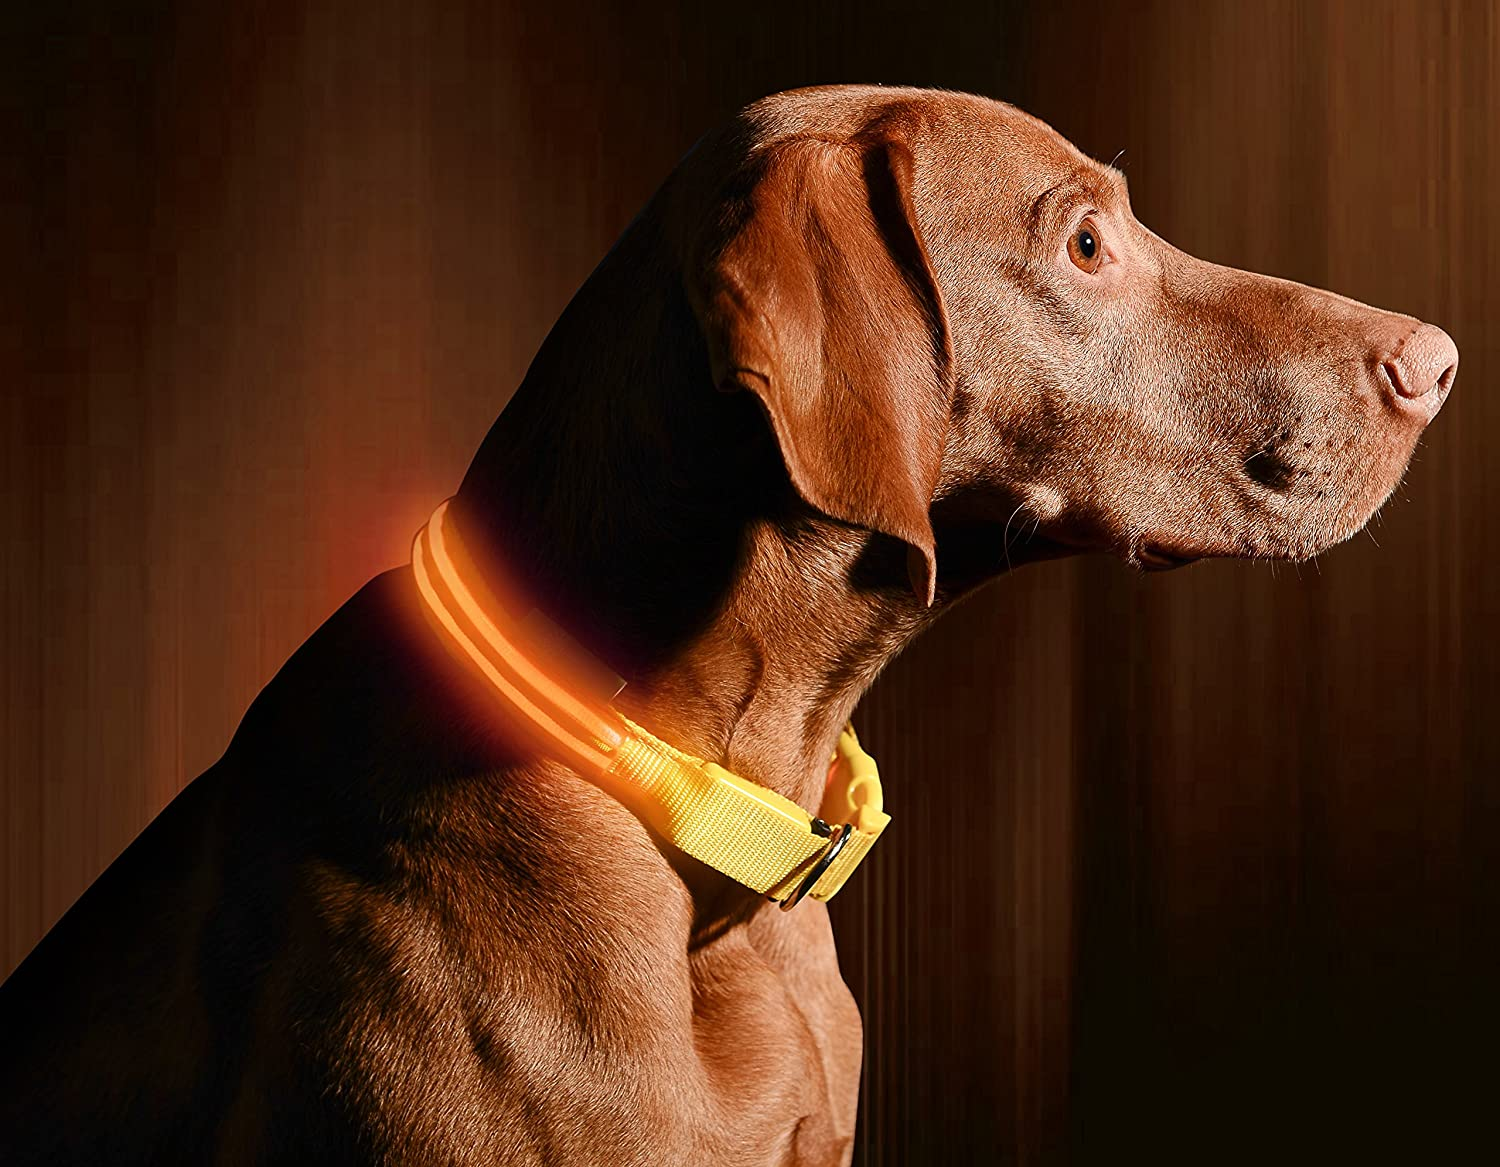 Bright orange X-Large (21.6 27.5\ Bright orange X-Large (21.6 27.5\ LED Dog Collar USB Rechargeable Available in 6 colors & 6 Sizes Makes Your Dog Visible, Safe & Seen